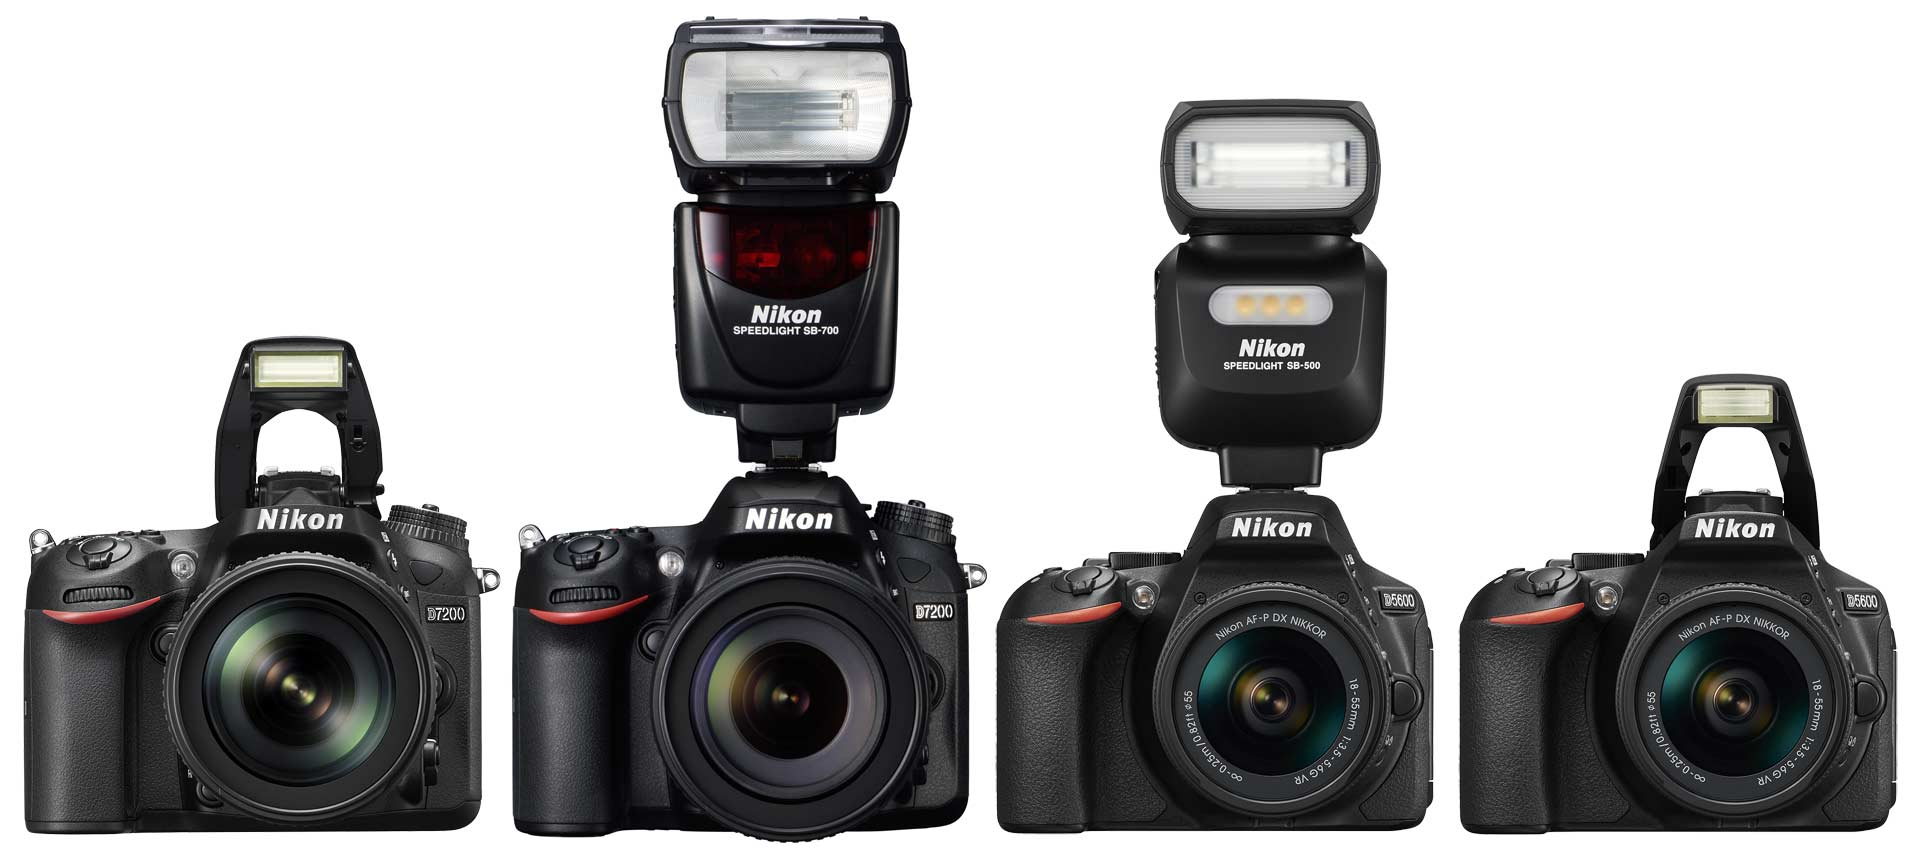 Nikon D5600 Vs D7200 Which Should You Buy Light And Matter Where To Get Parts Diagram For A D5000 Slr With Dx Vr Afs The Pop Up Flash Of Can Not Be Used As Wireless Controller Other Units But Use Radio Triggers Or Hot Shoe Mounted